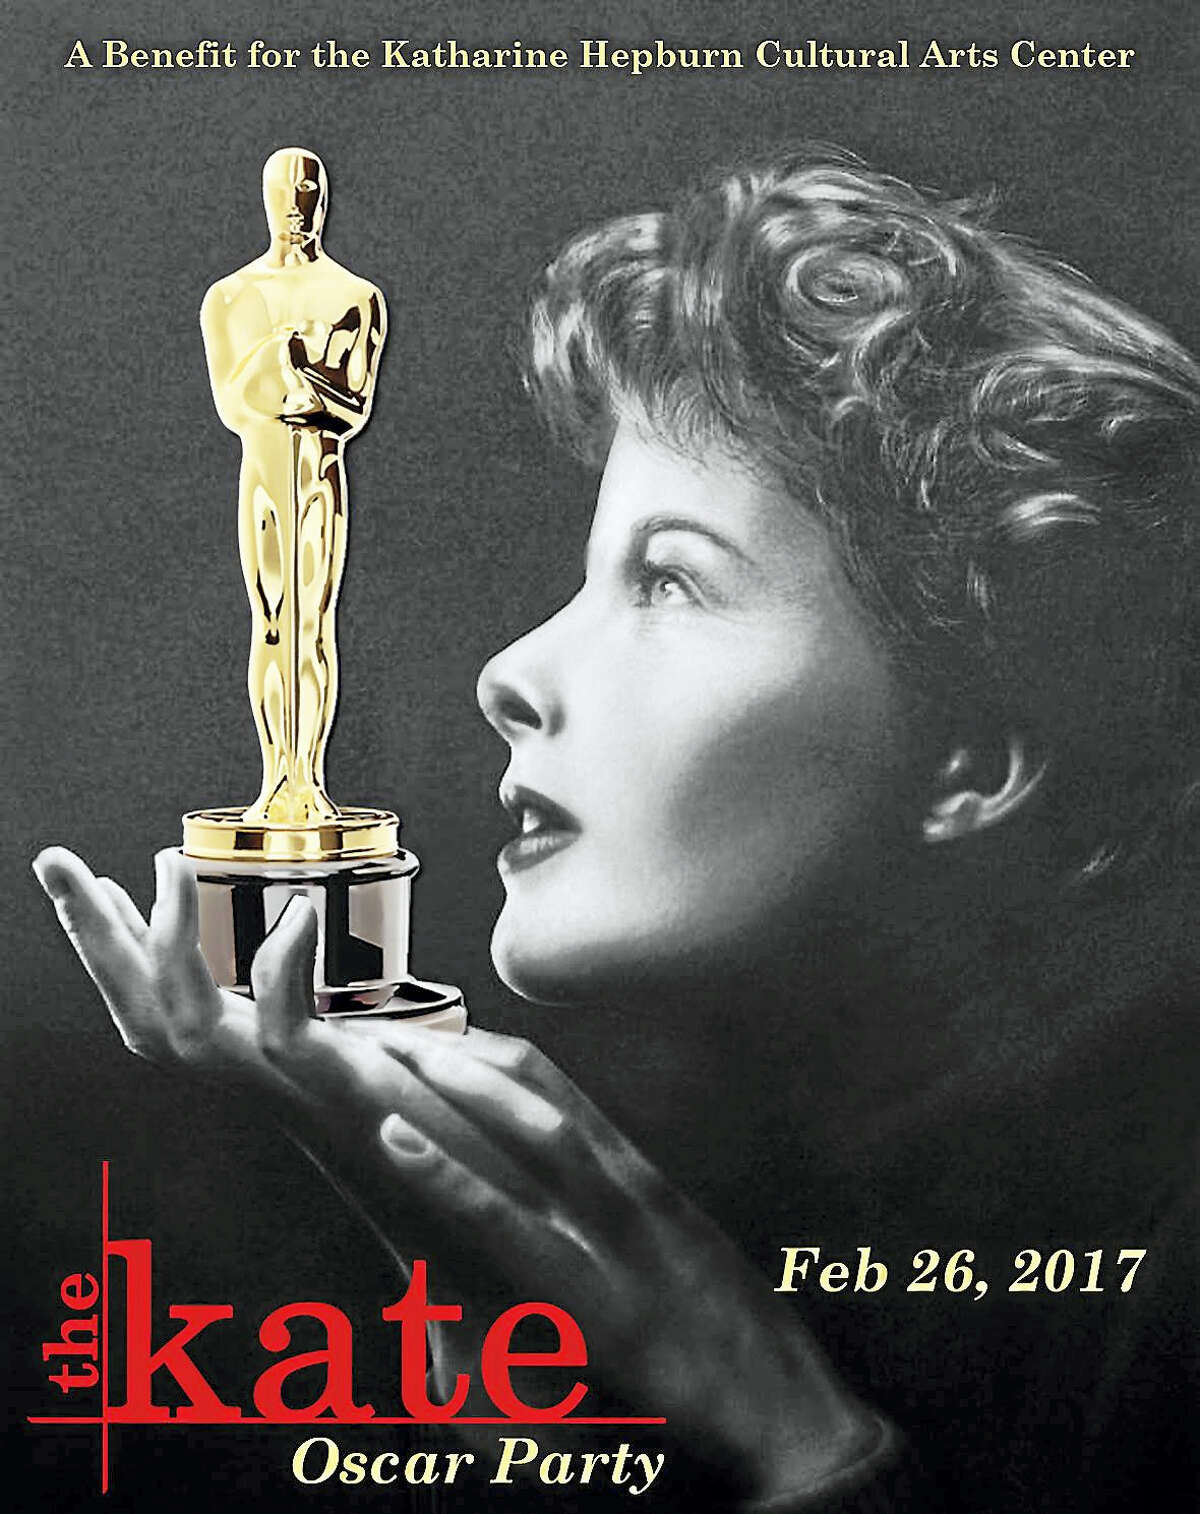 Contributed photoThe Kate will host a fundraiser Oscar party in Old Saybrook.